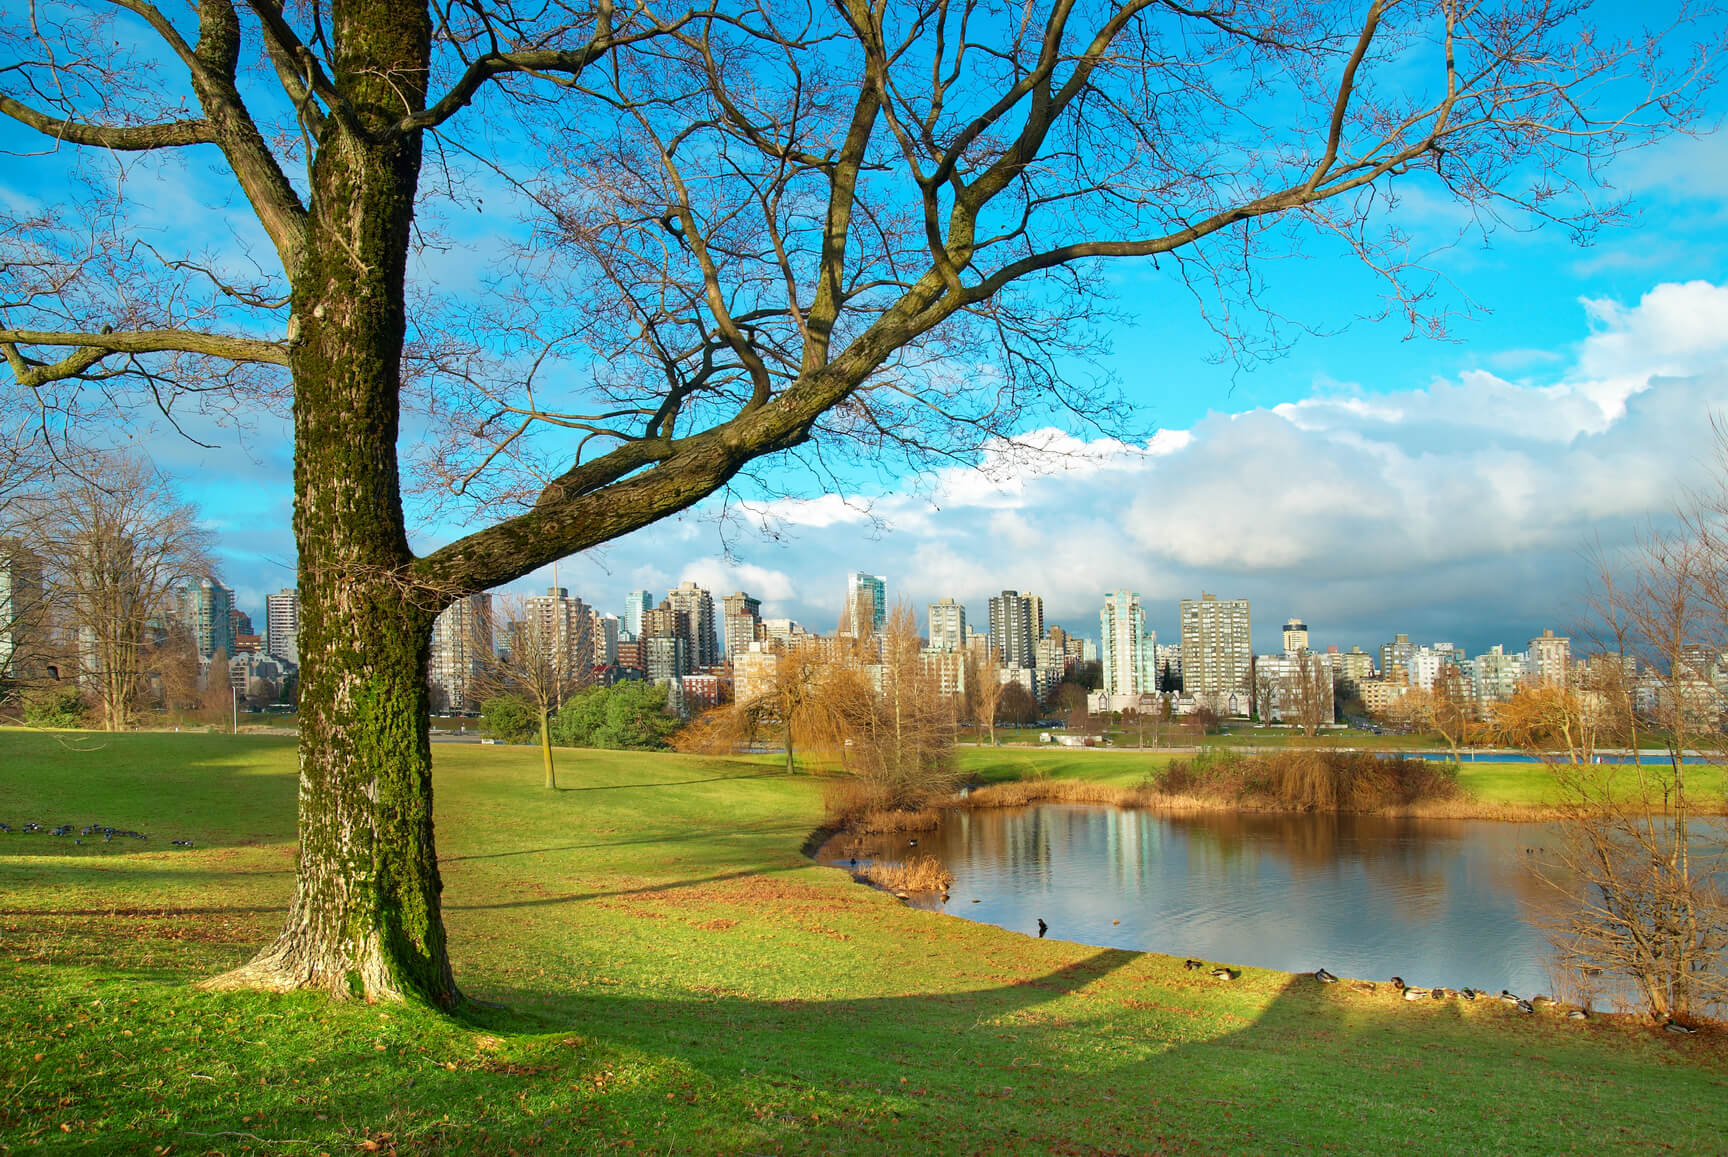 Non-stop from Chicago to Vancouver, Canada for only $197 roundtrip (Sep-Feb dates)